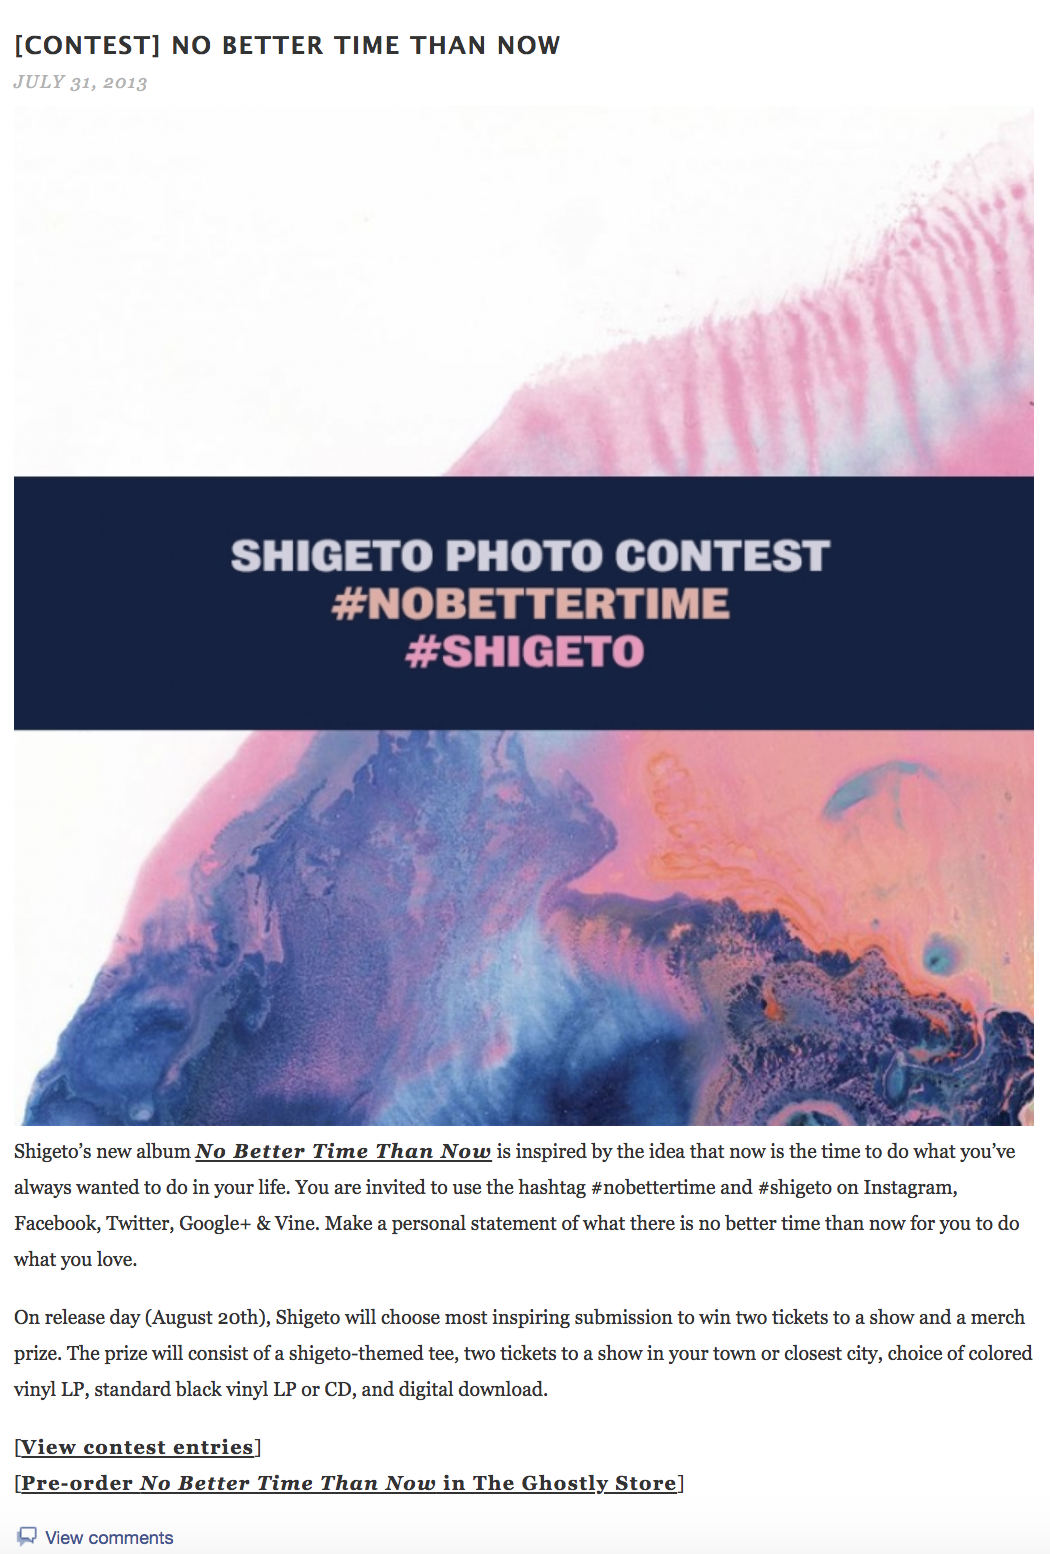 Ghostly NBTTN Photo Contest.png